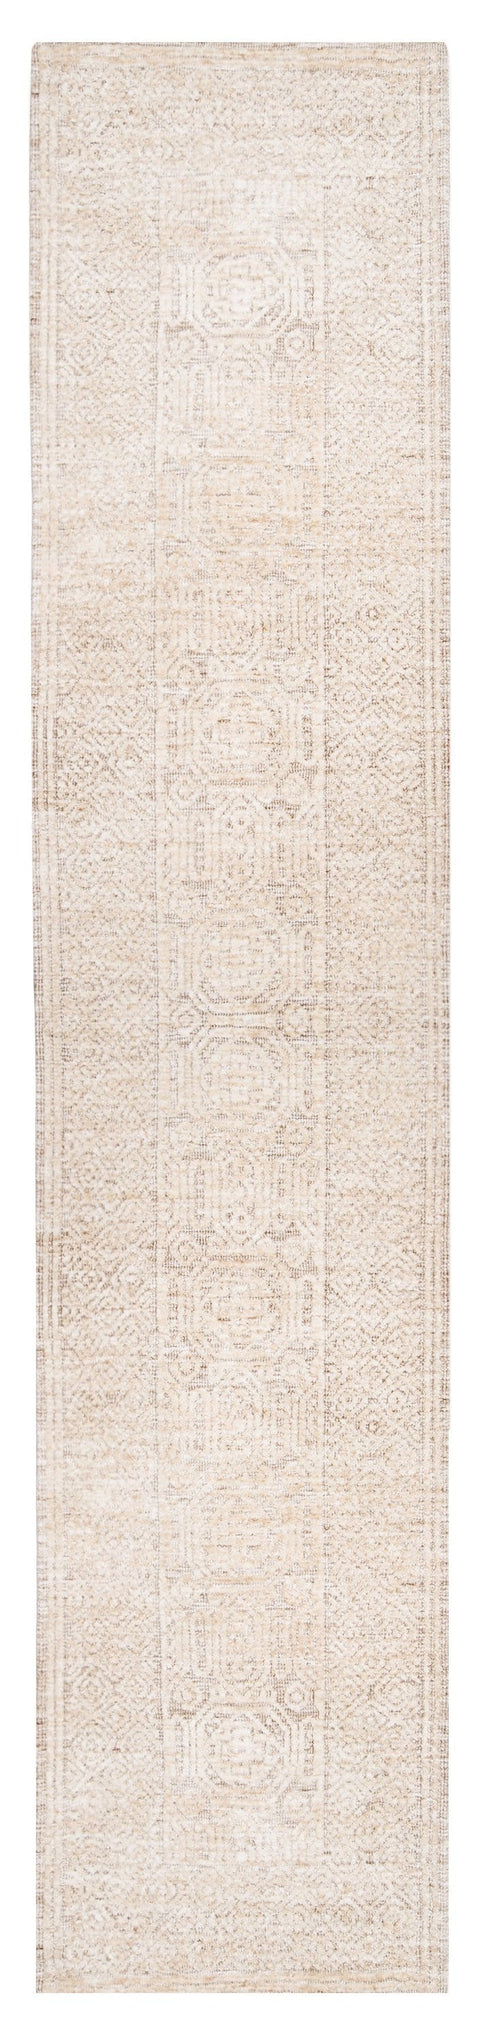 Makira Ivory Brown and Grey Tribal Textured Runner Rug